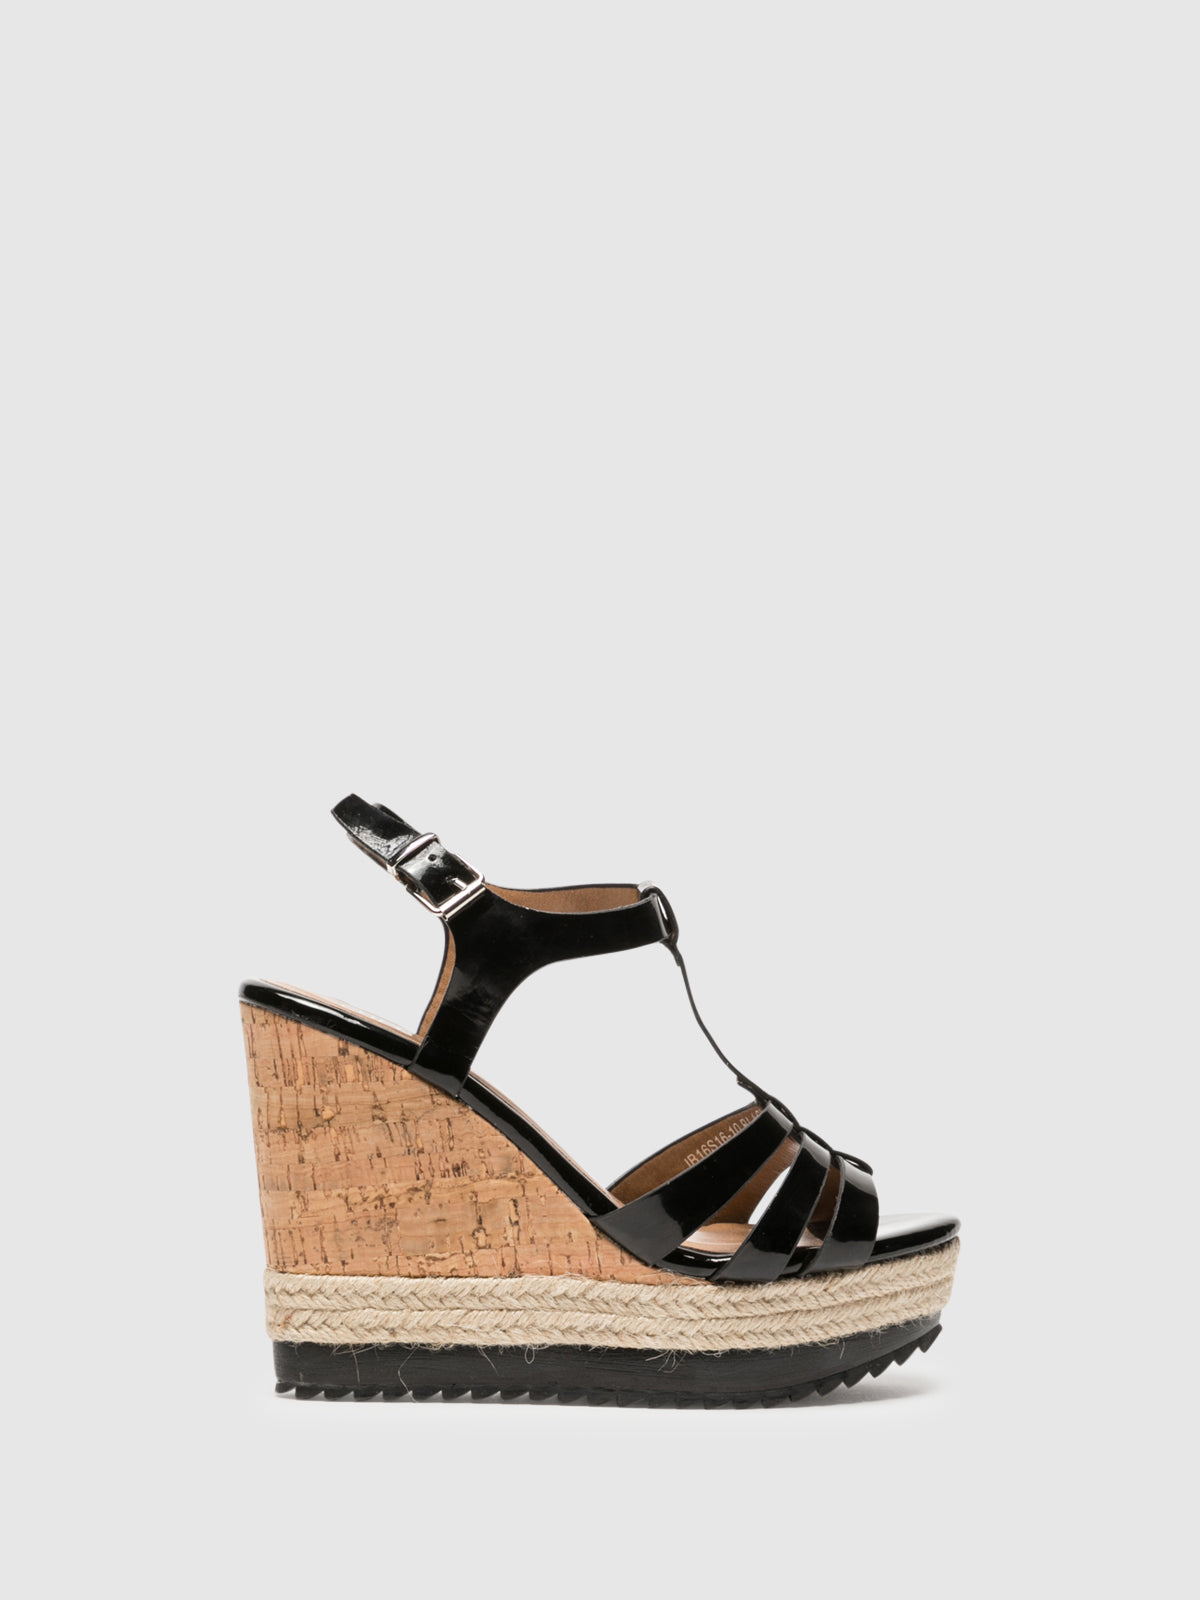 Foreva Black Wedge Sandals